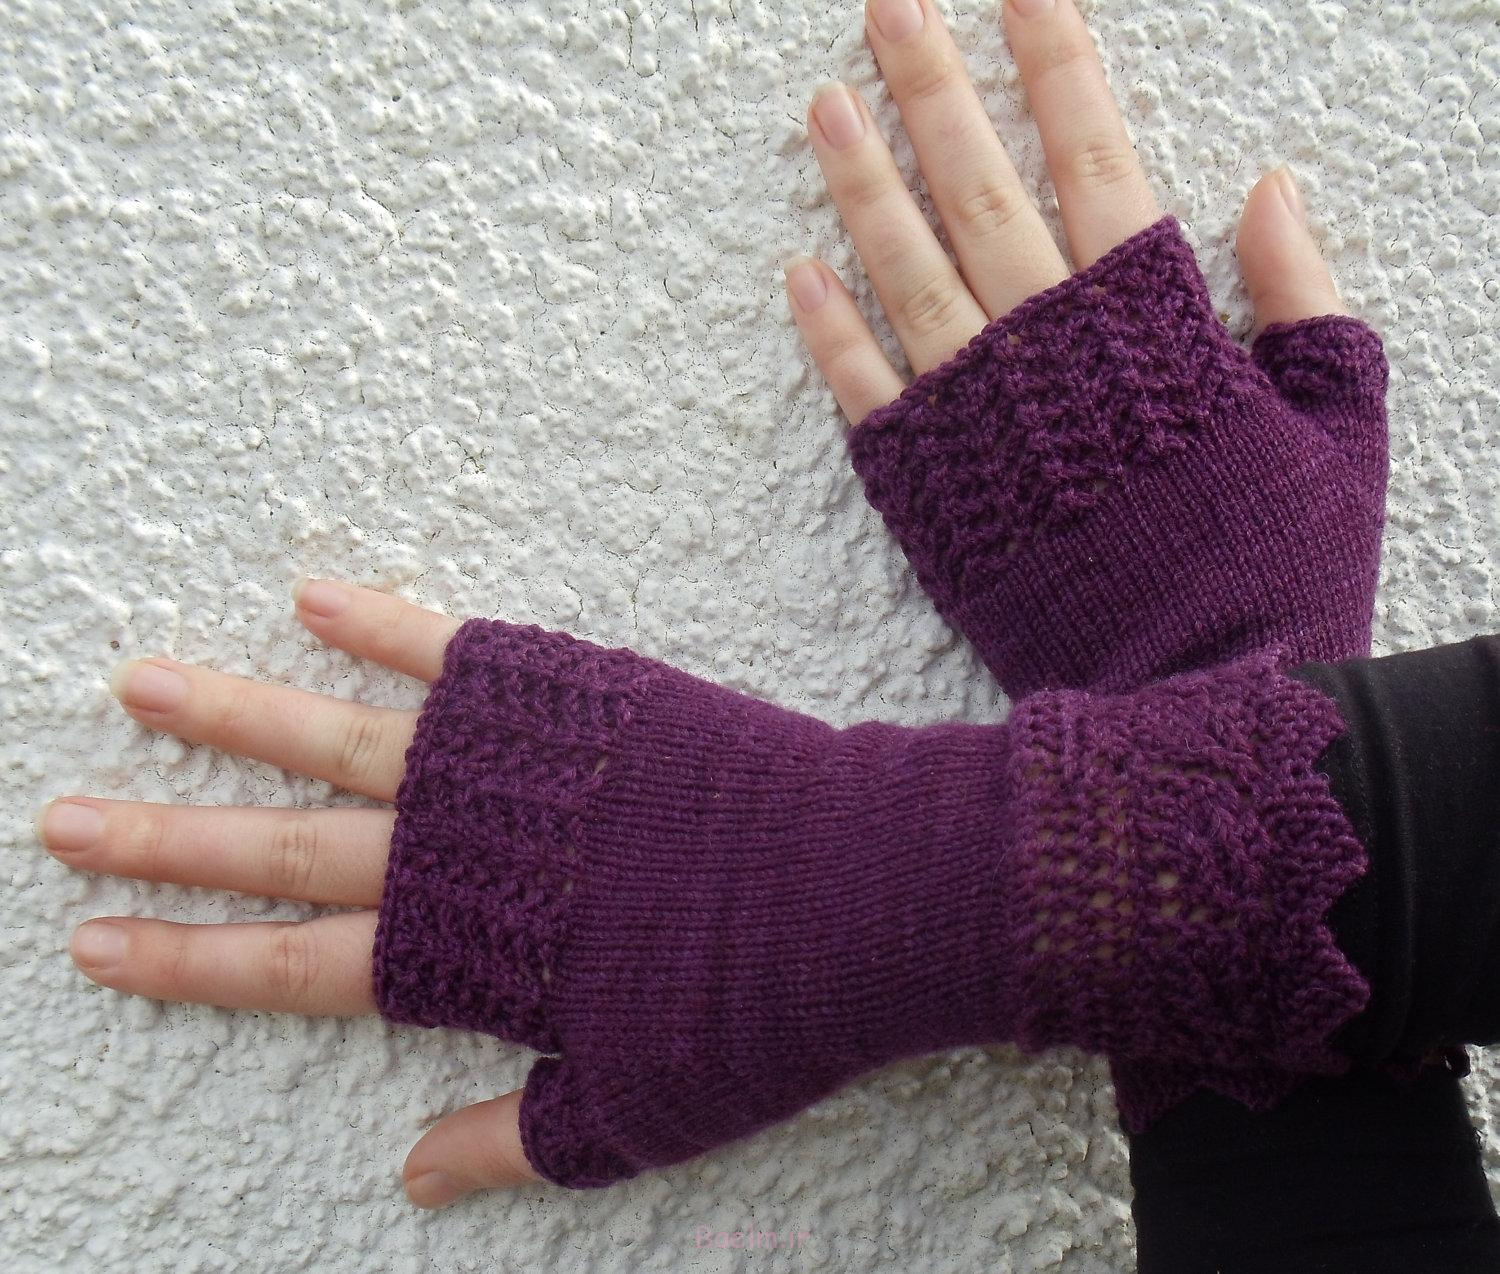 fingerless mittens knitting pattern ideas (7)